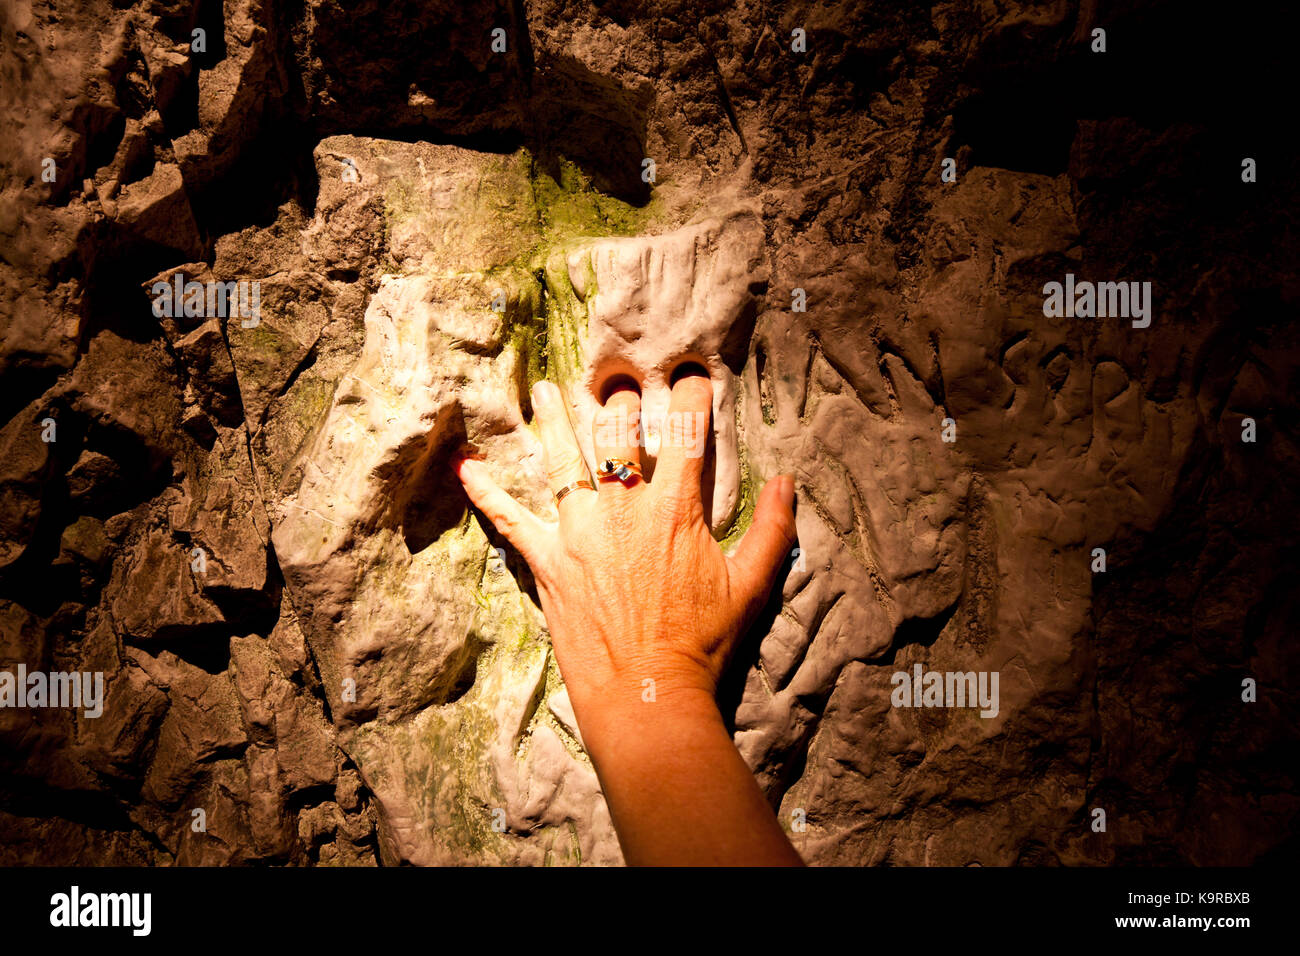 Chalk carving of face in hand-dug tunnel (placing fingers in eyes brings good luck). 2010. Hell-Fire Caves. West - Stock Image